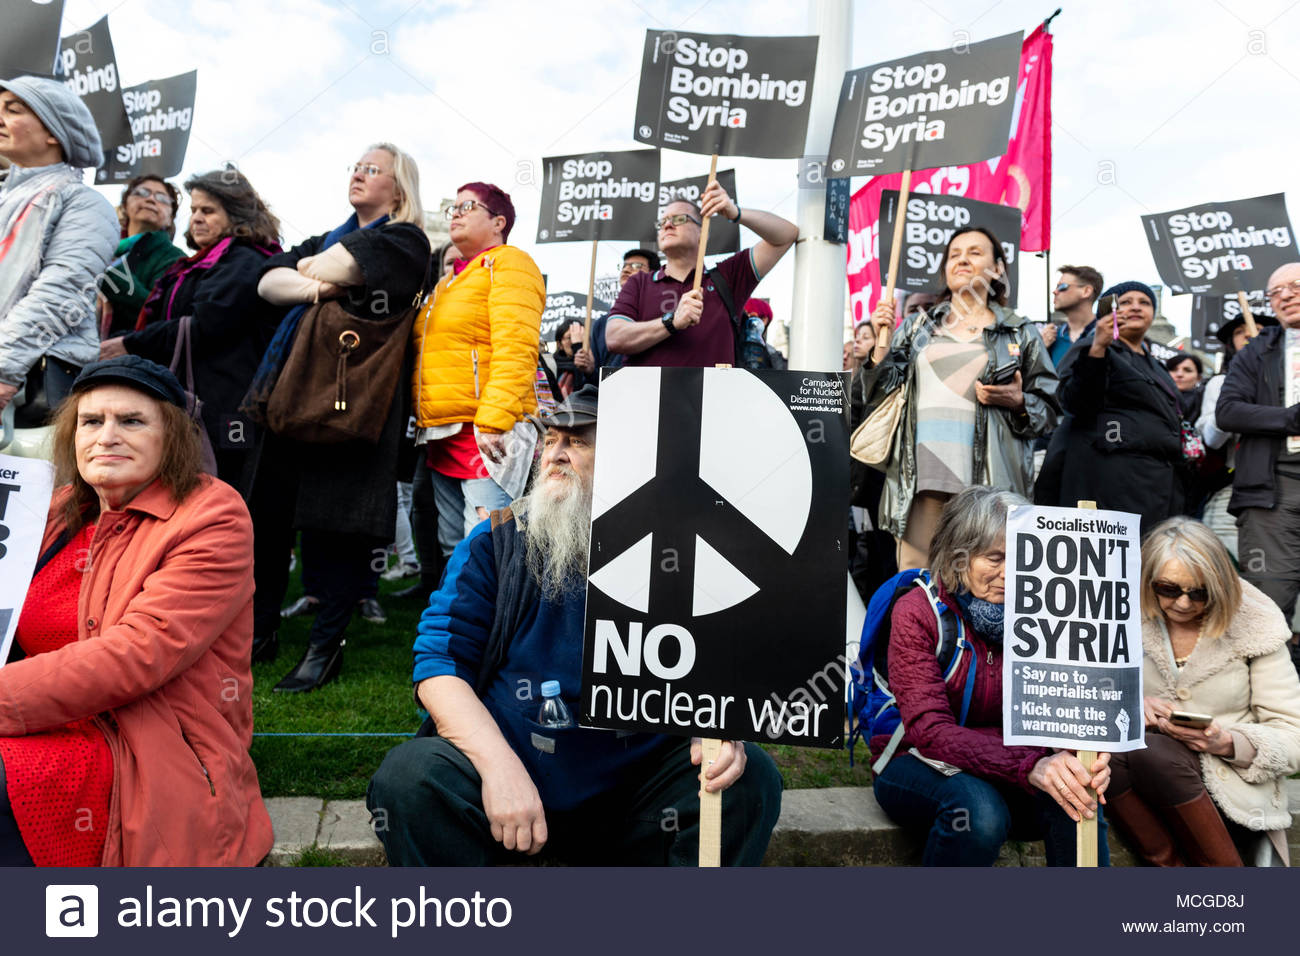 London, England, 16th April, 2018. After Friday night's Coalition strike by America, Great Britain and France on sites near Damascus and Homs in Syria that were hit in an alleged chemical attack in Douma on April 7th 2018, anti-war activists took to the street and showed they anger outside Downing Street. Credit: David Nash/Alamy Live News - Stock Image